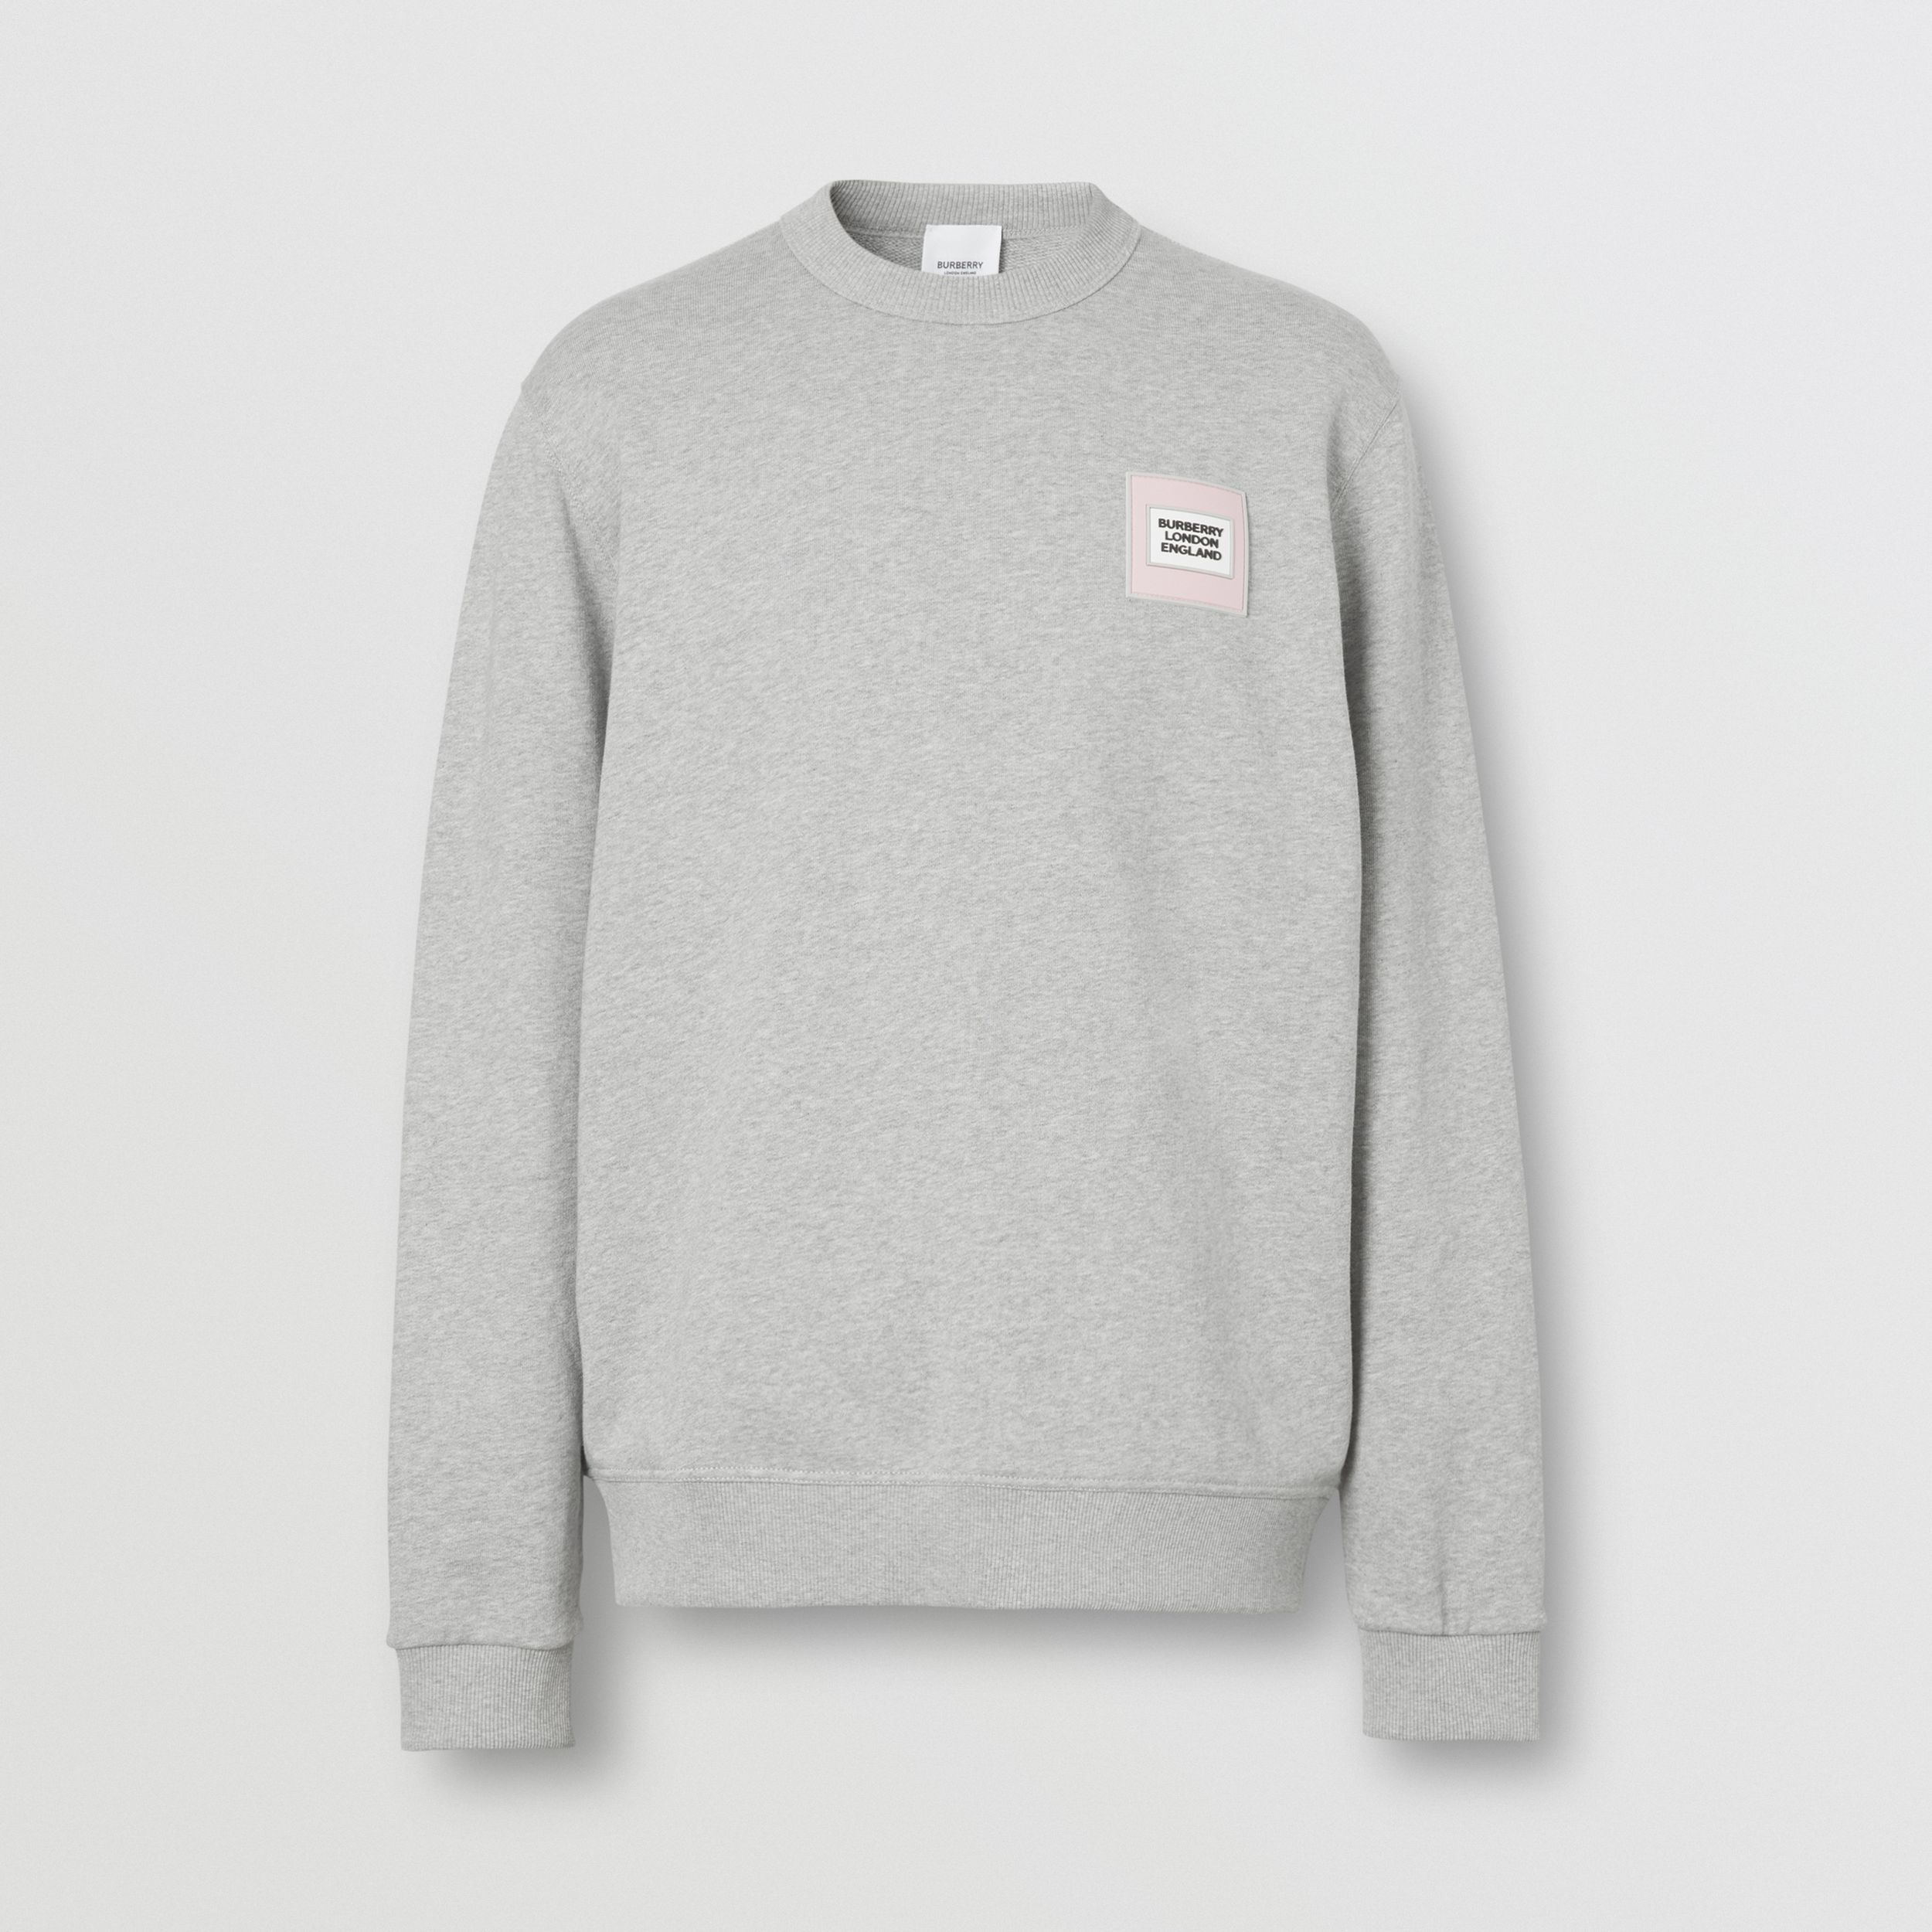 Logo Appliqué Cotton Sweatshirt in Pale Grey Melange - Men | Burberry - 4